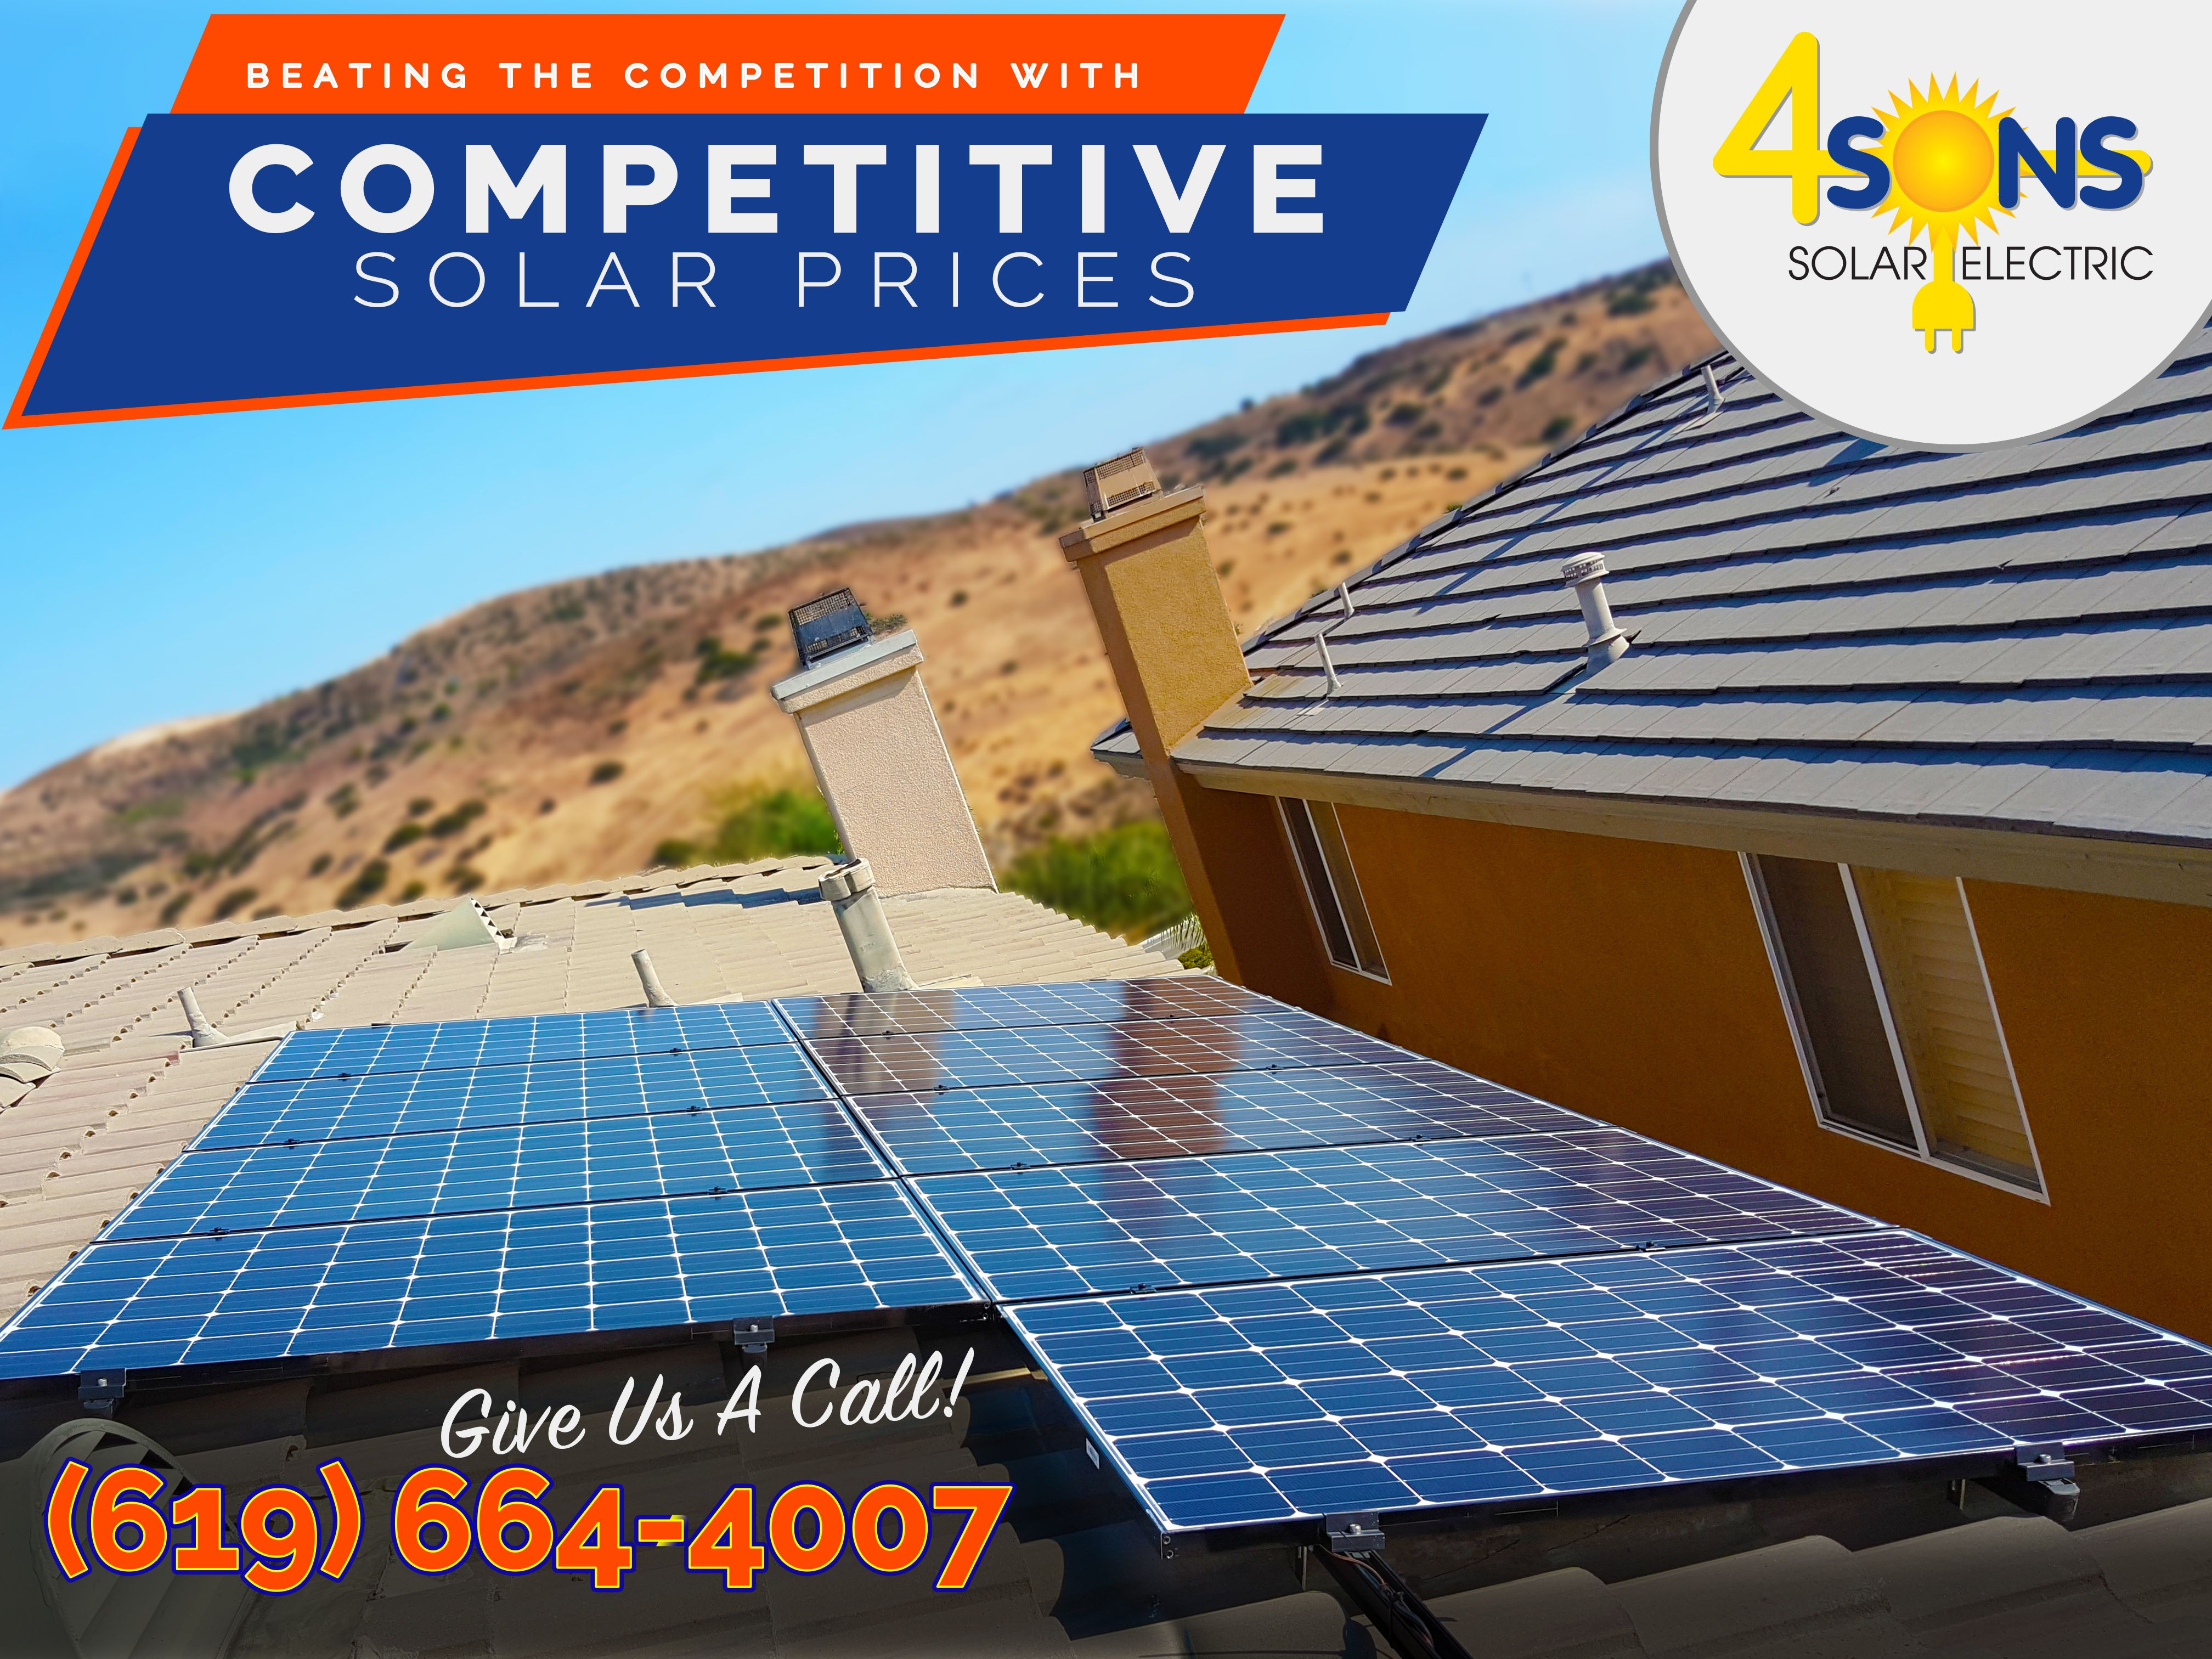 Pin By 4 Sons Solar Electric Inc On San Diego Solar Roof Solar Panel Solar Panels Outdoor Decor